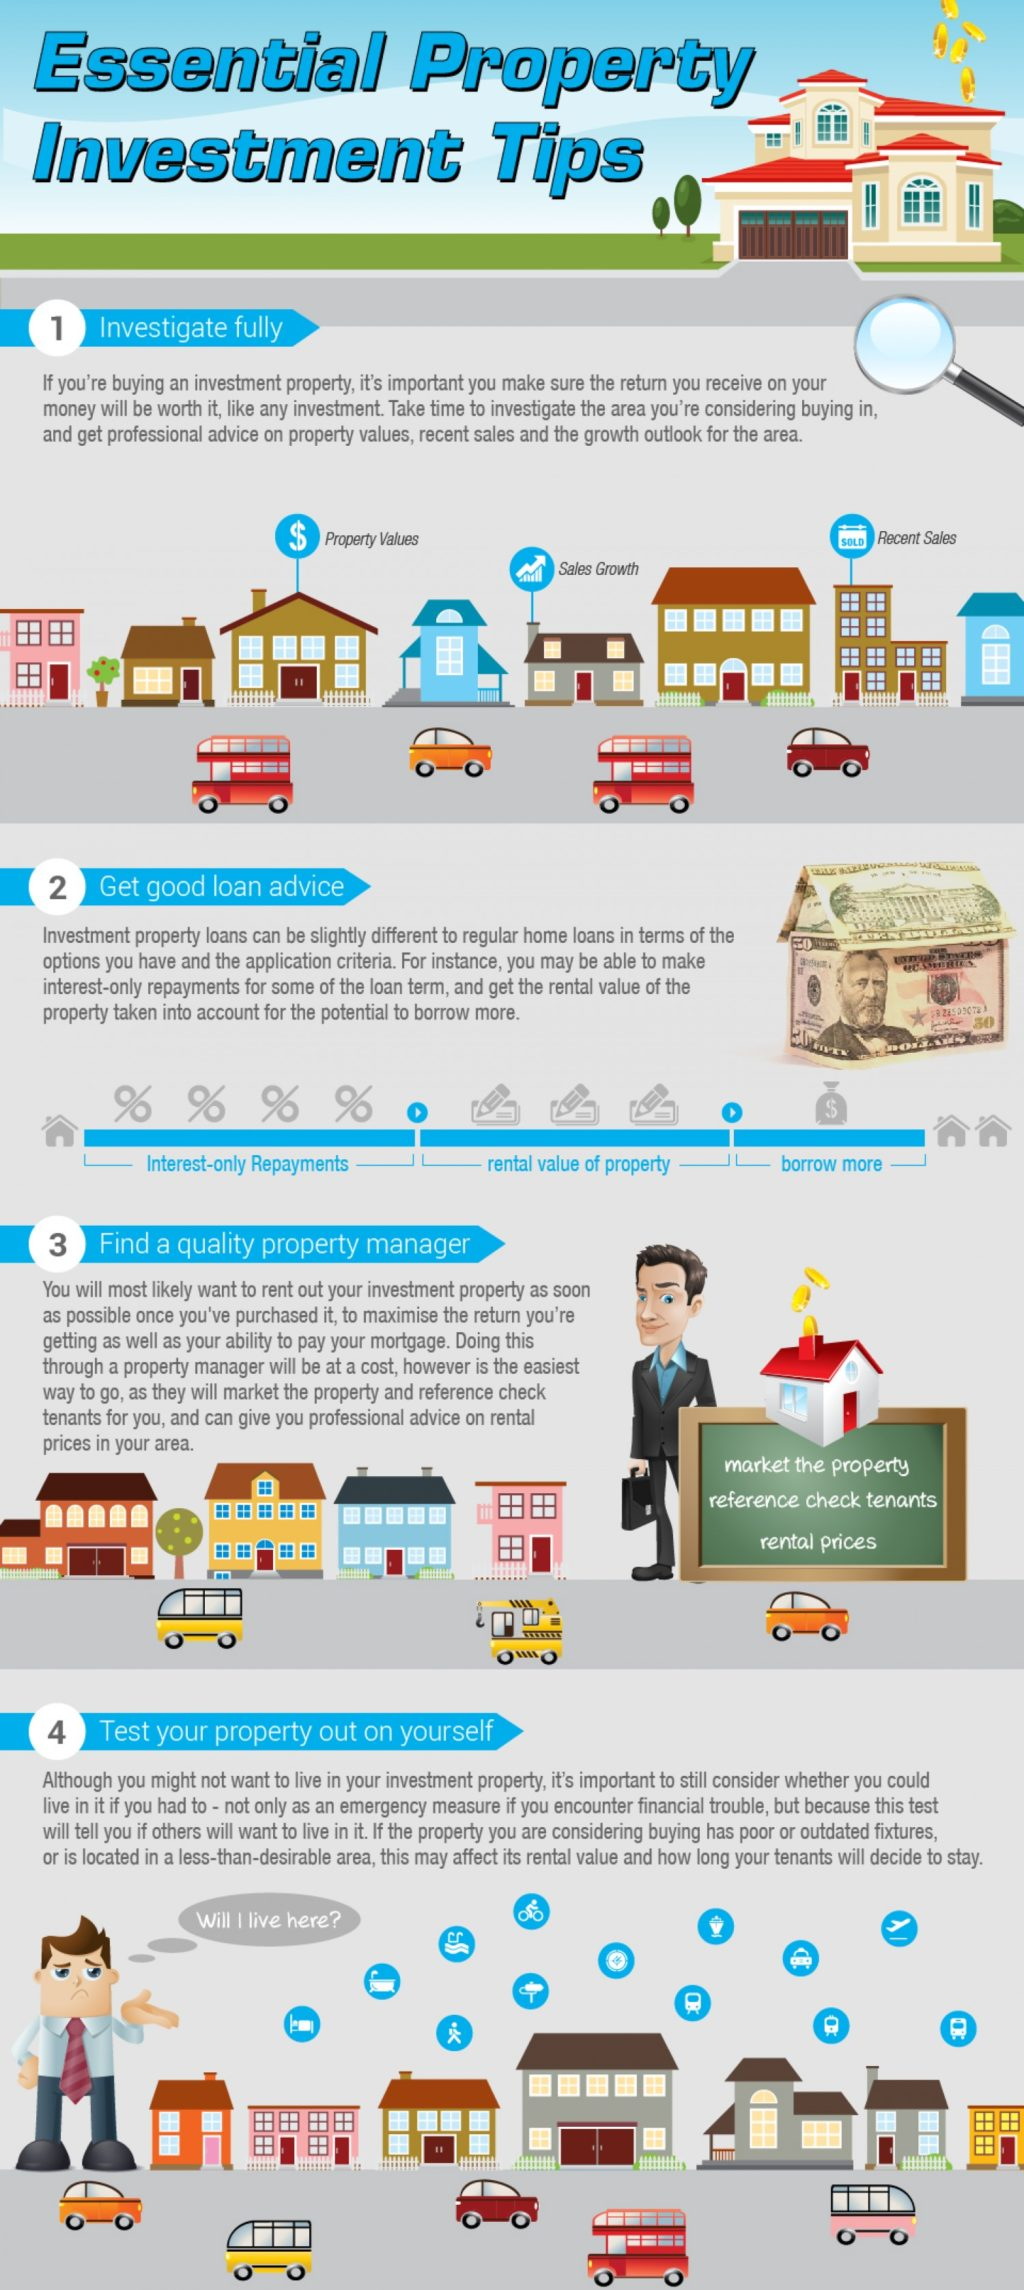 Essential Property Investment Tips!